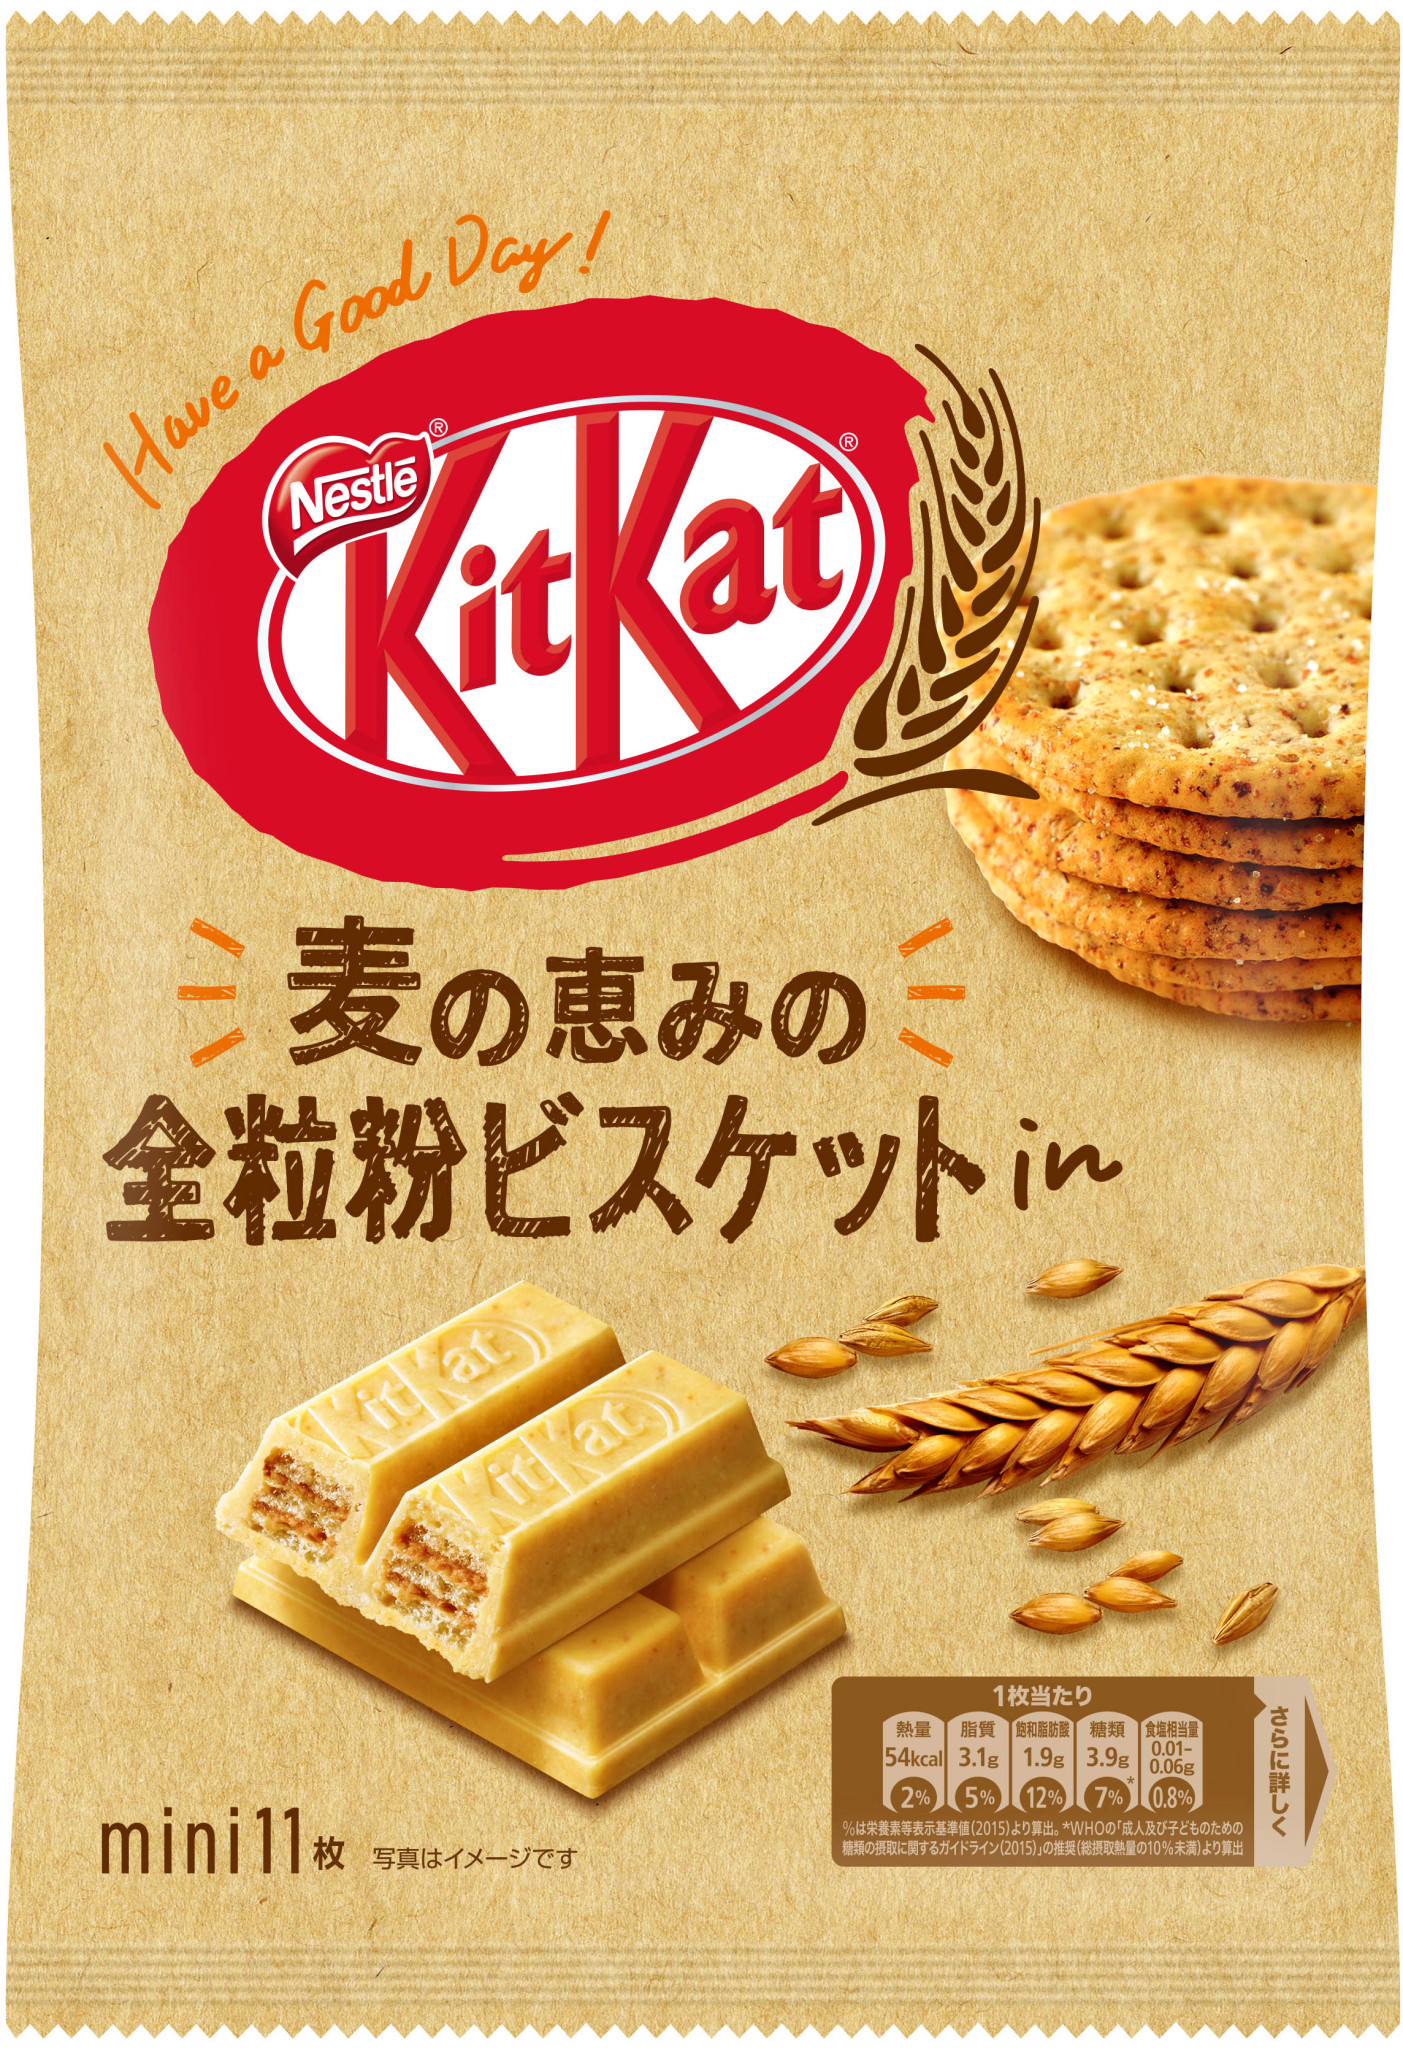 Japanese-Kit-Kat-new-wheat-biscuit-Graham-cracker-Japan-limited-edition-healthy-chocolate-6.jpg